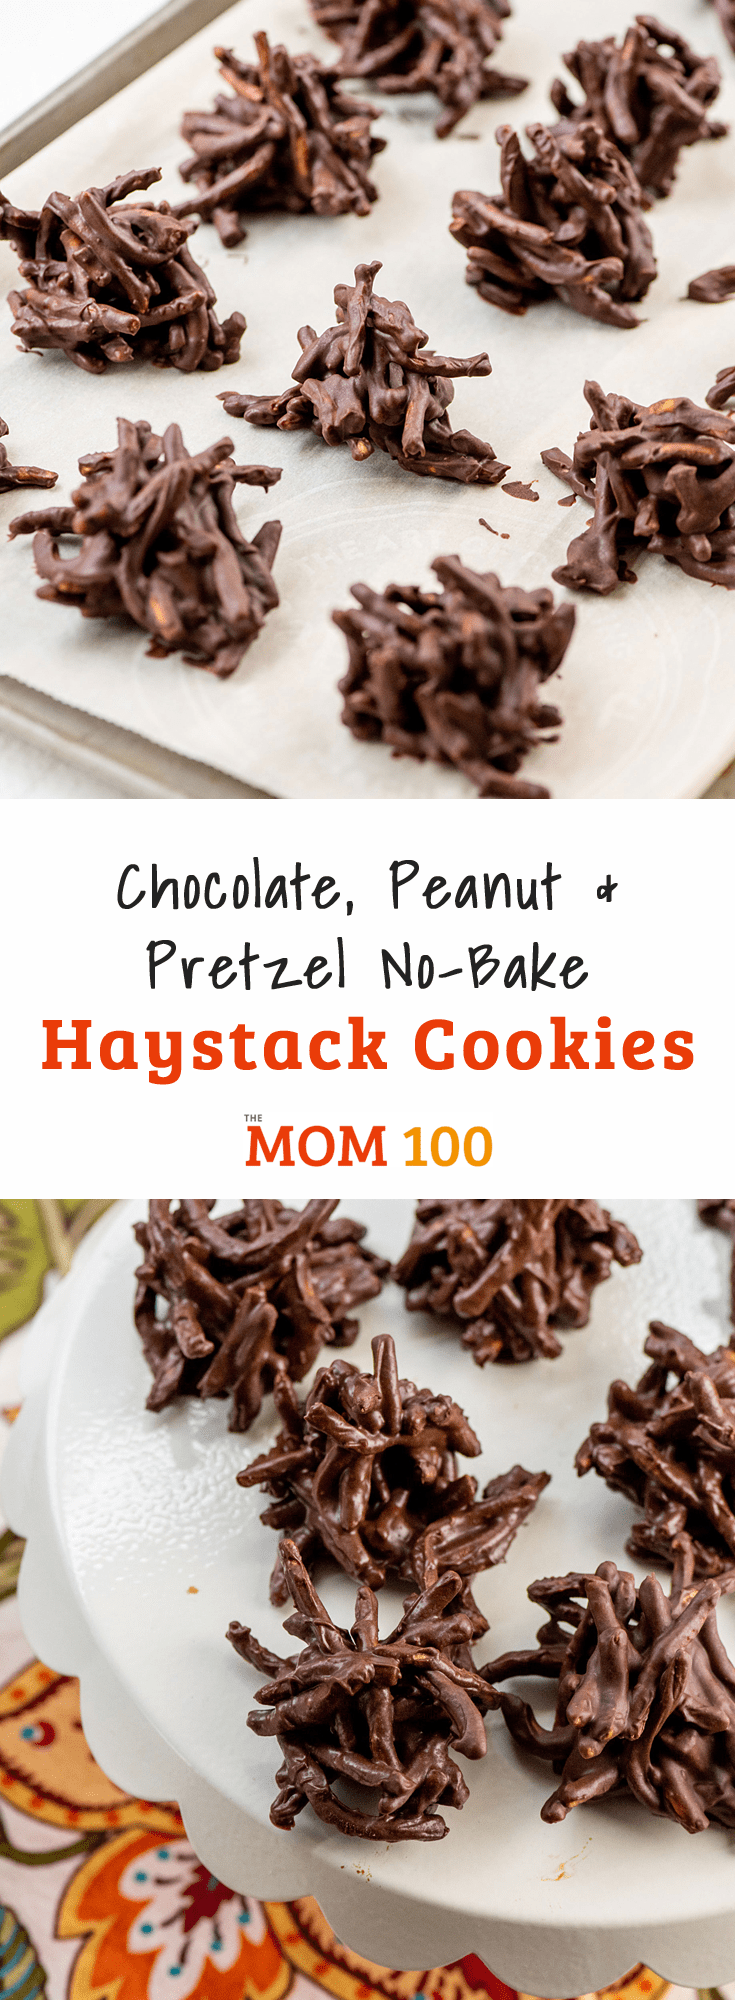 These Chocolate, Peanut and Pretzel No-Bake Haystack Cookies are crunchy and chocolatey—an addictive combination.